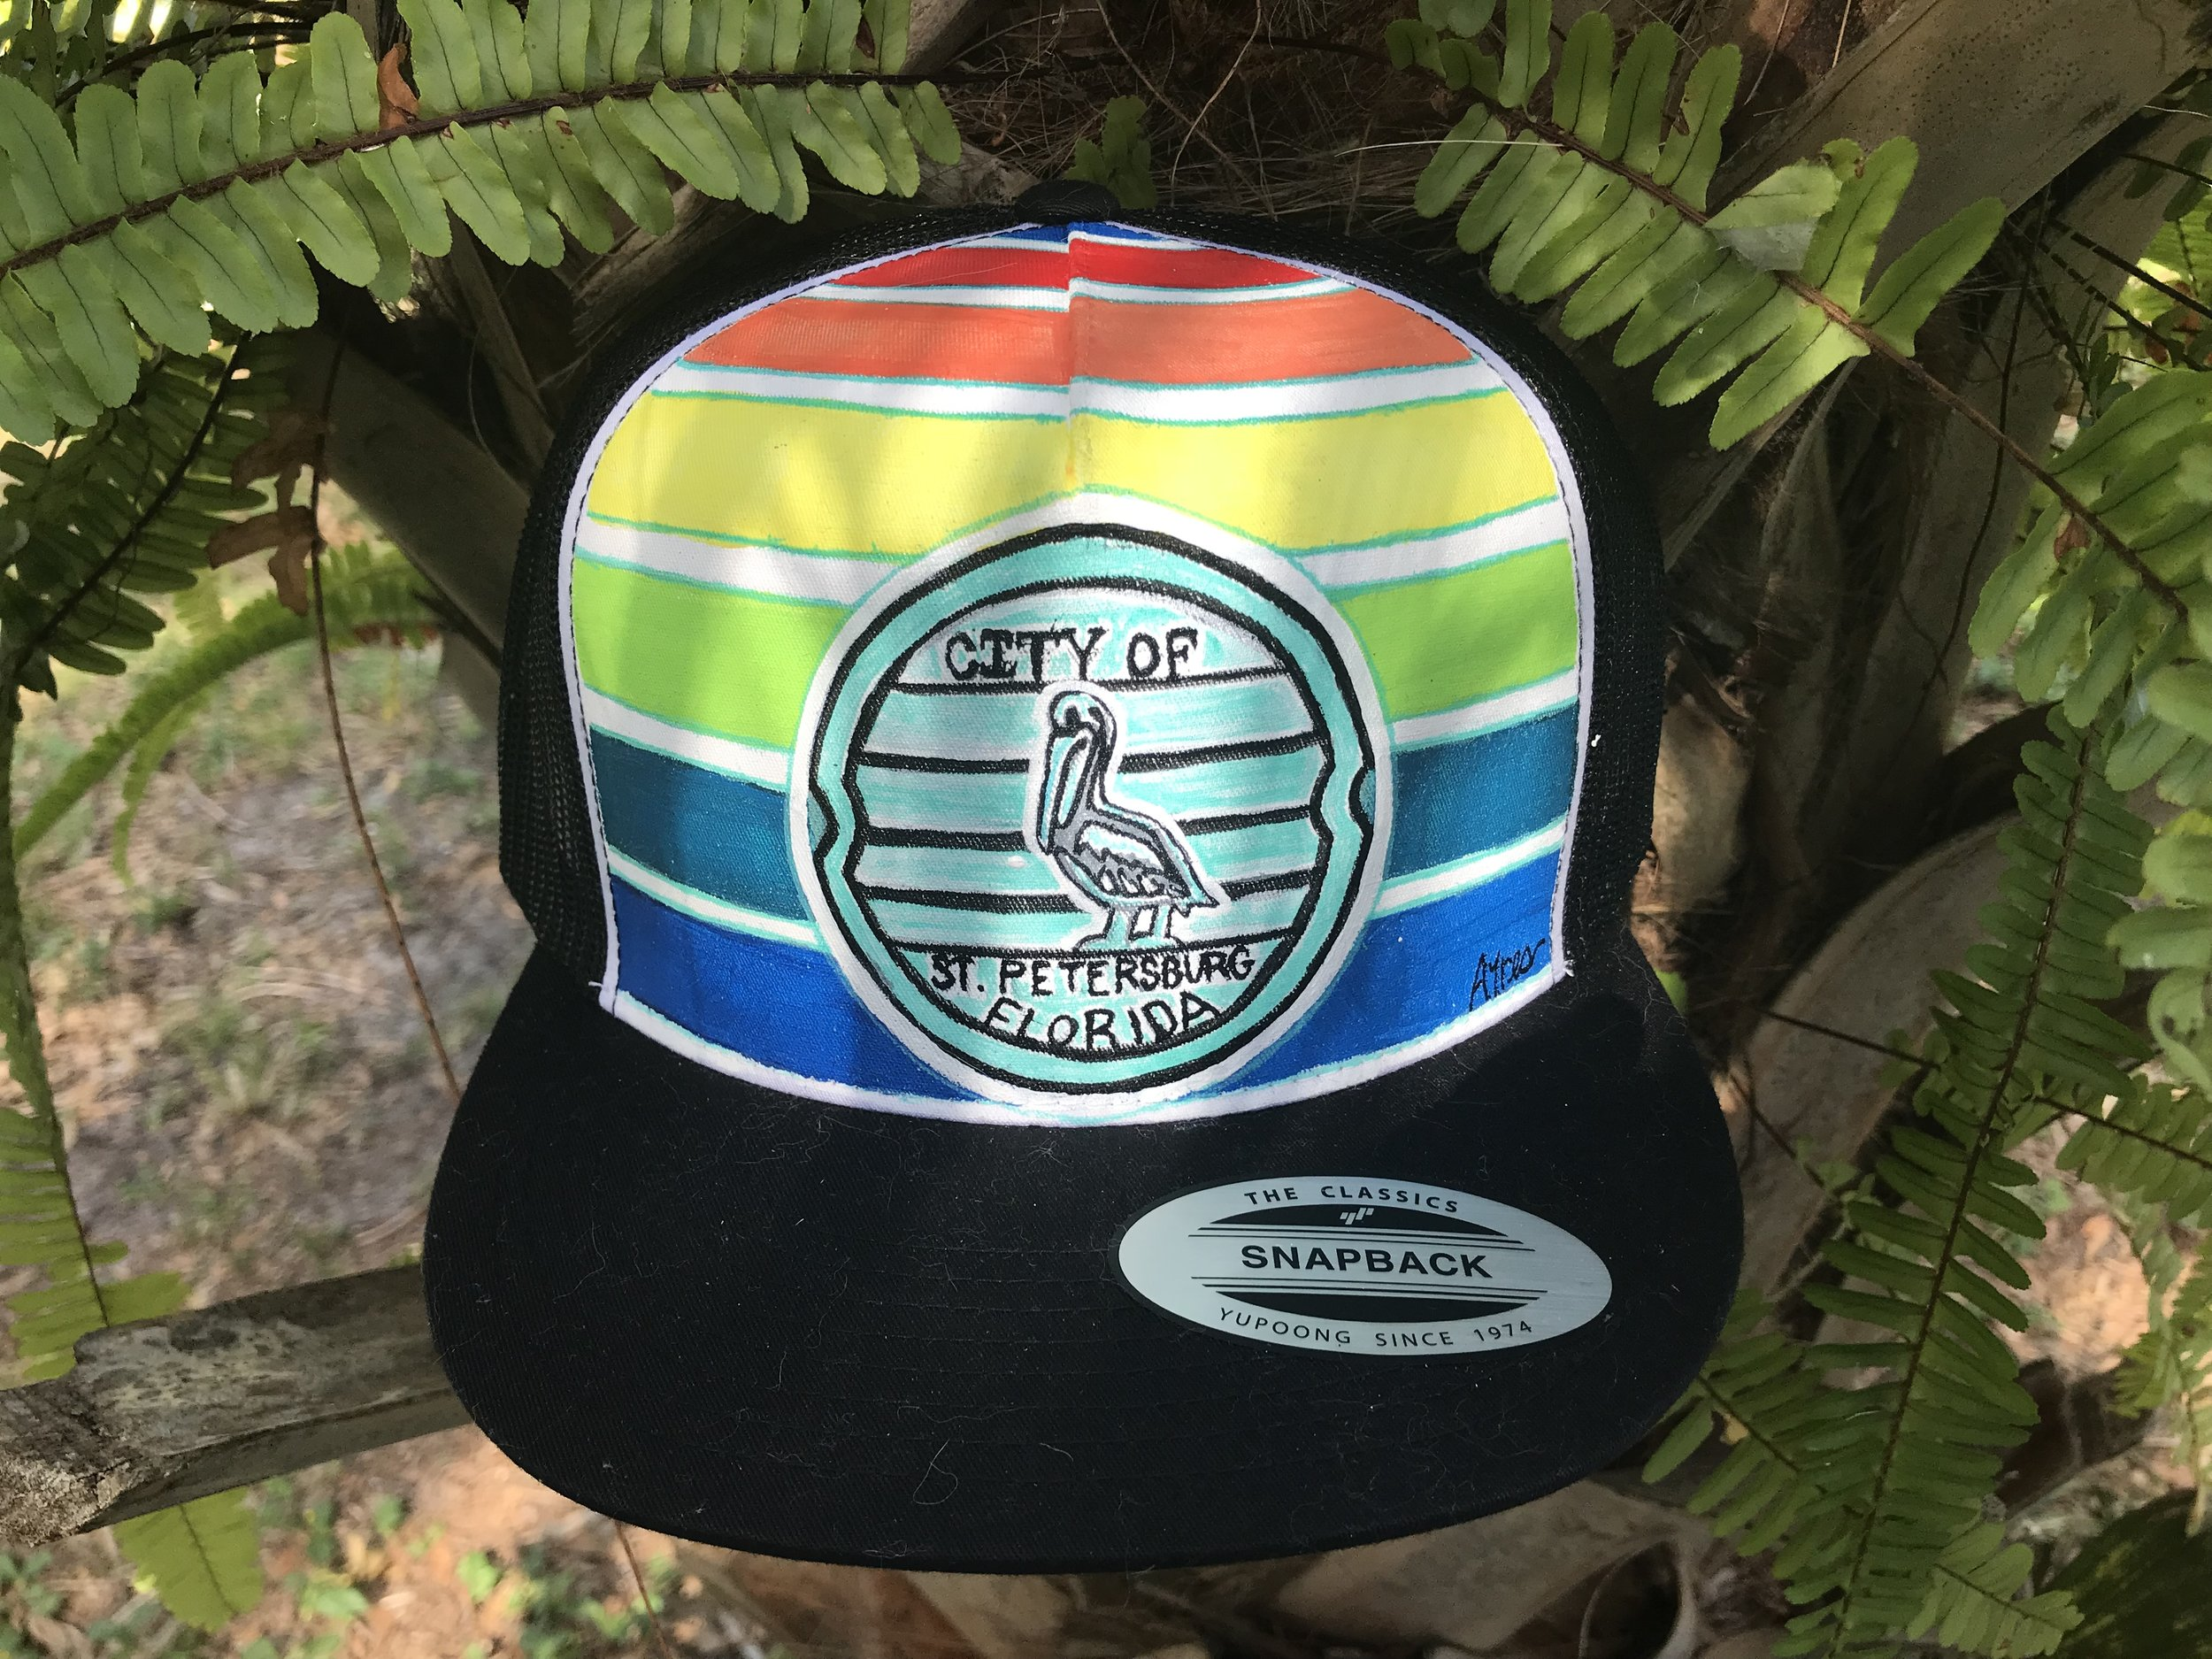 A special design for St Pete Pride!